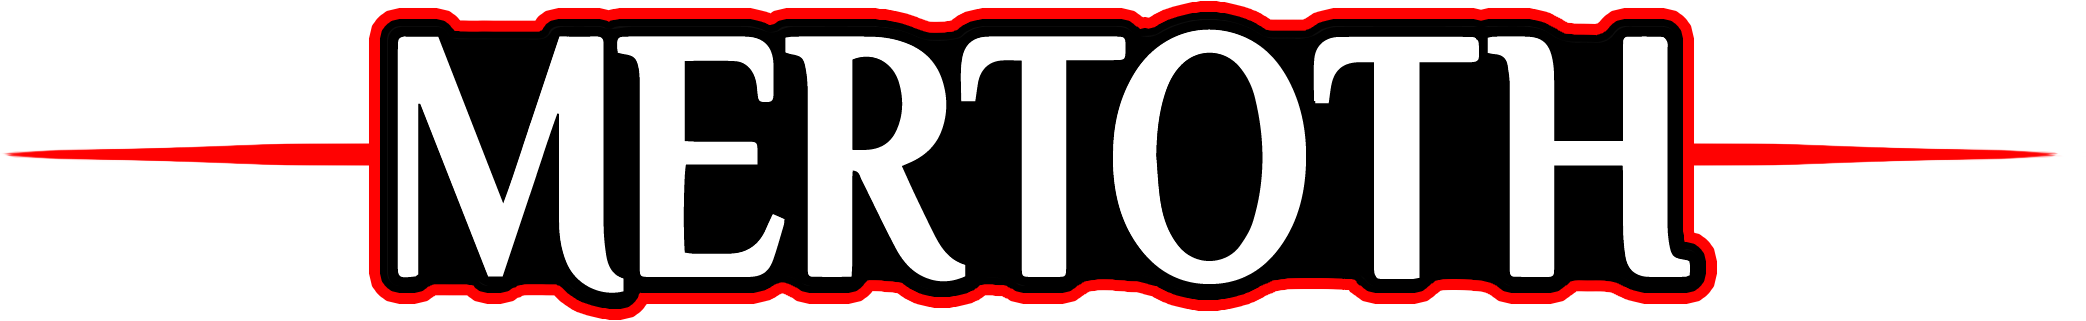 Mertoth Banner PNG.png